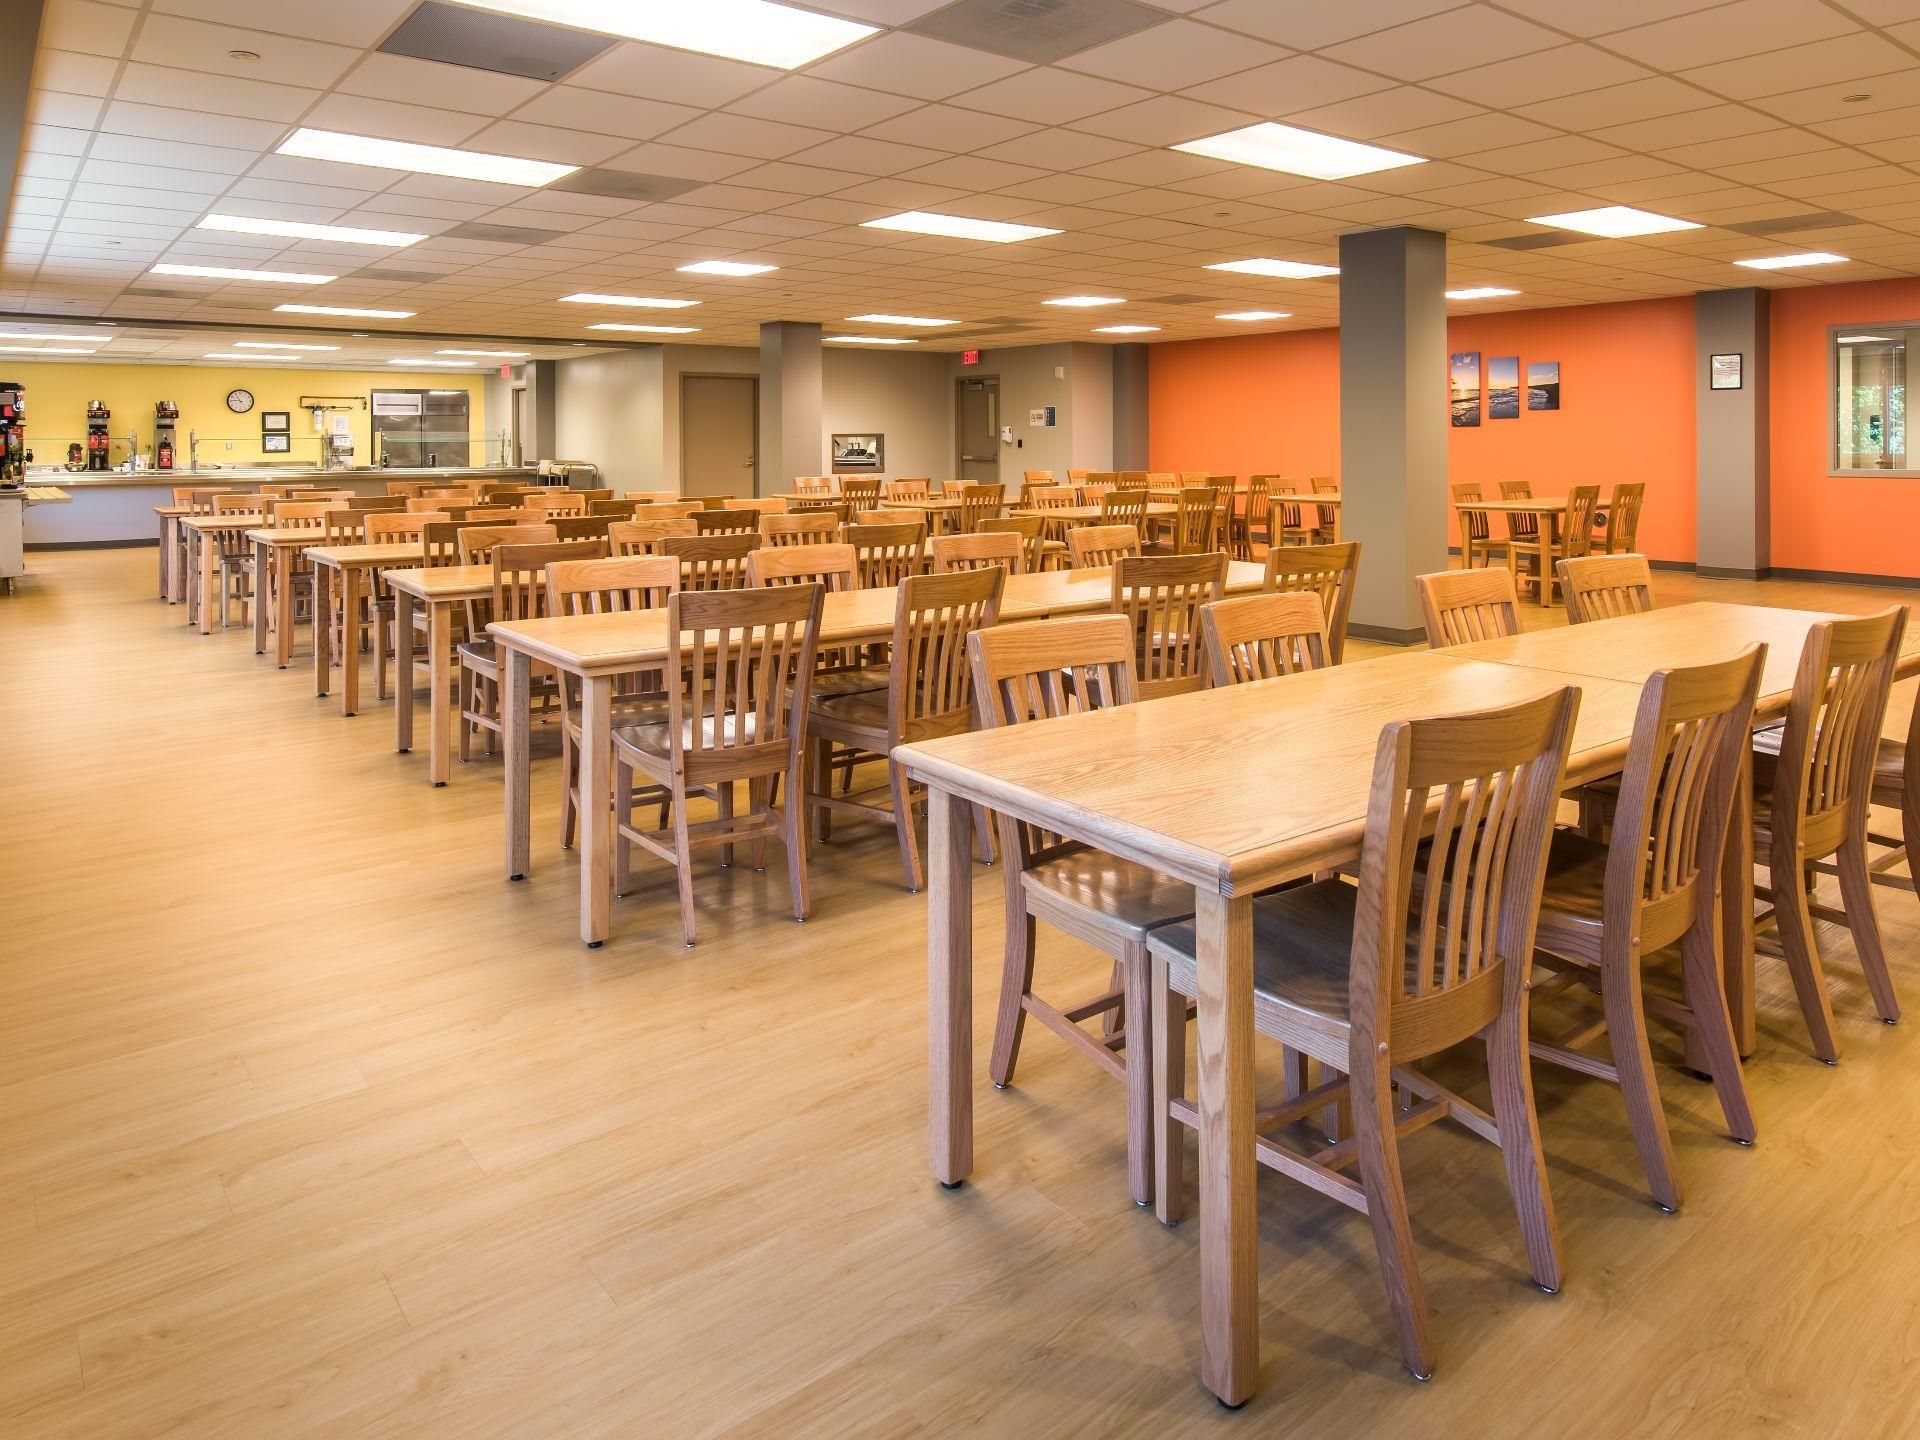 Cafeteria with wooden tables and chairs